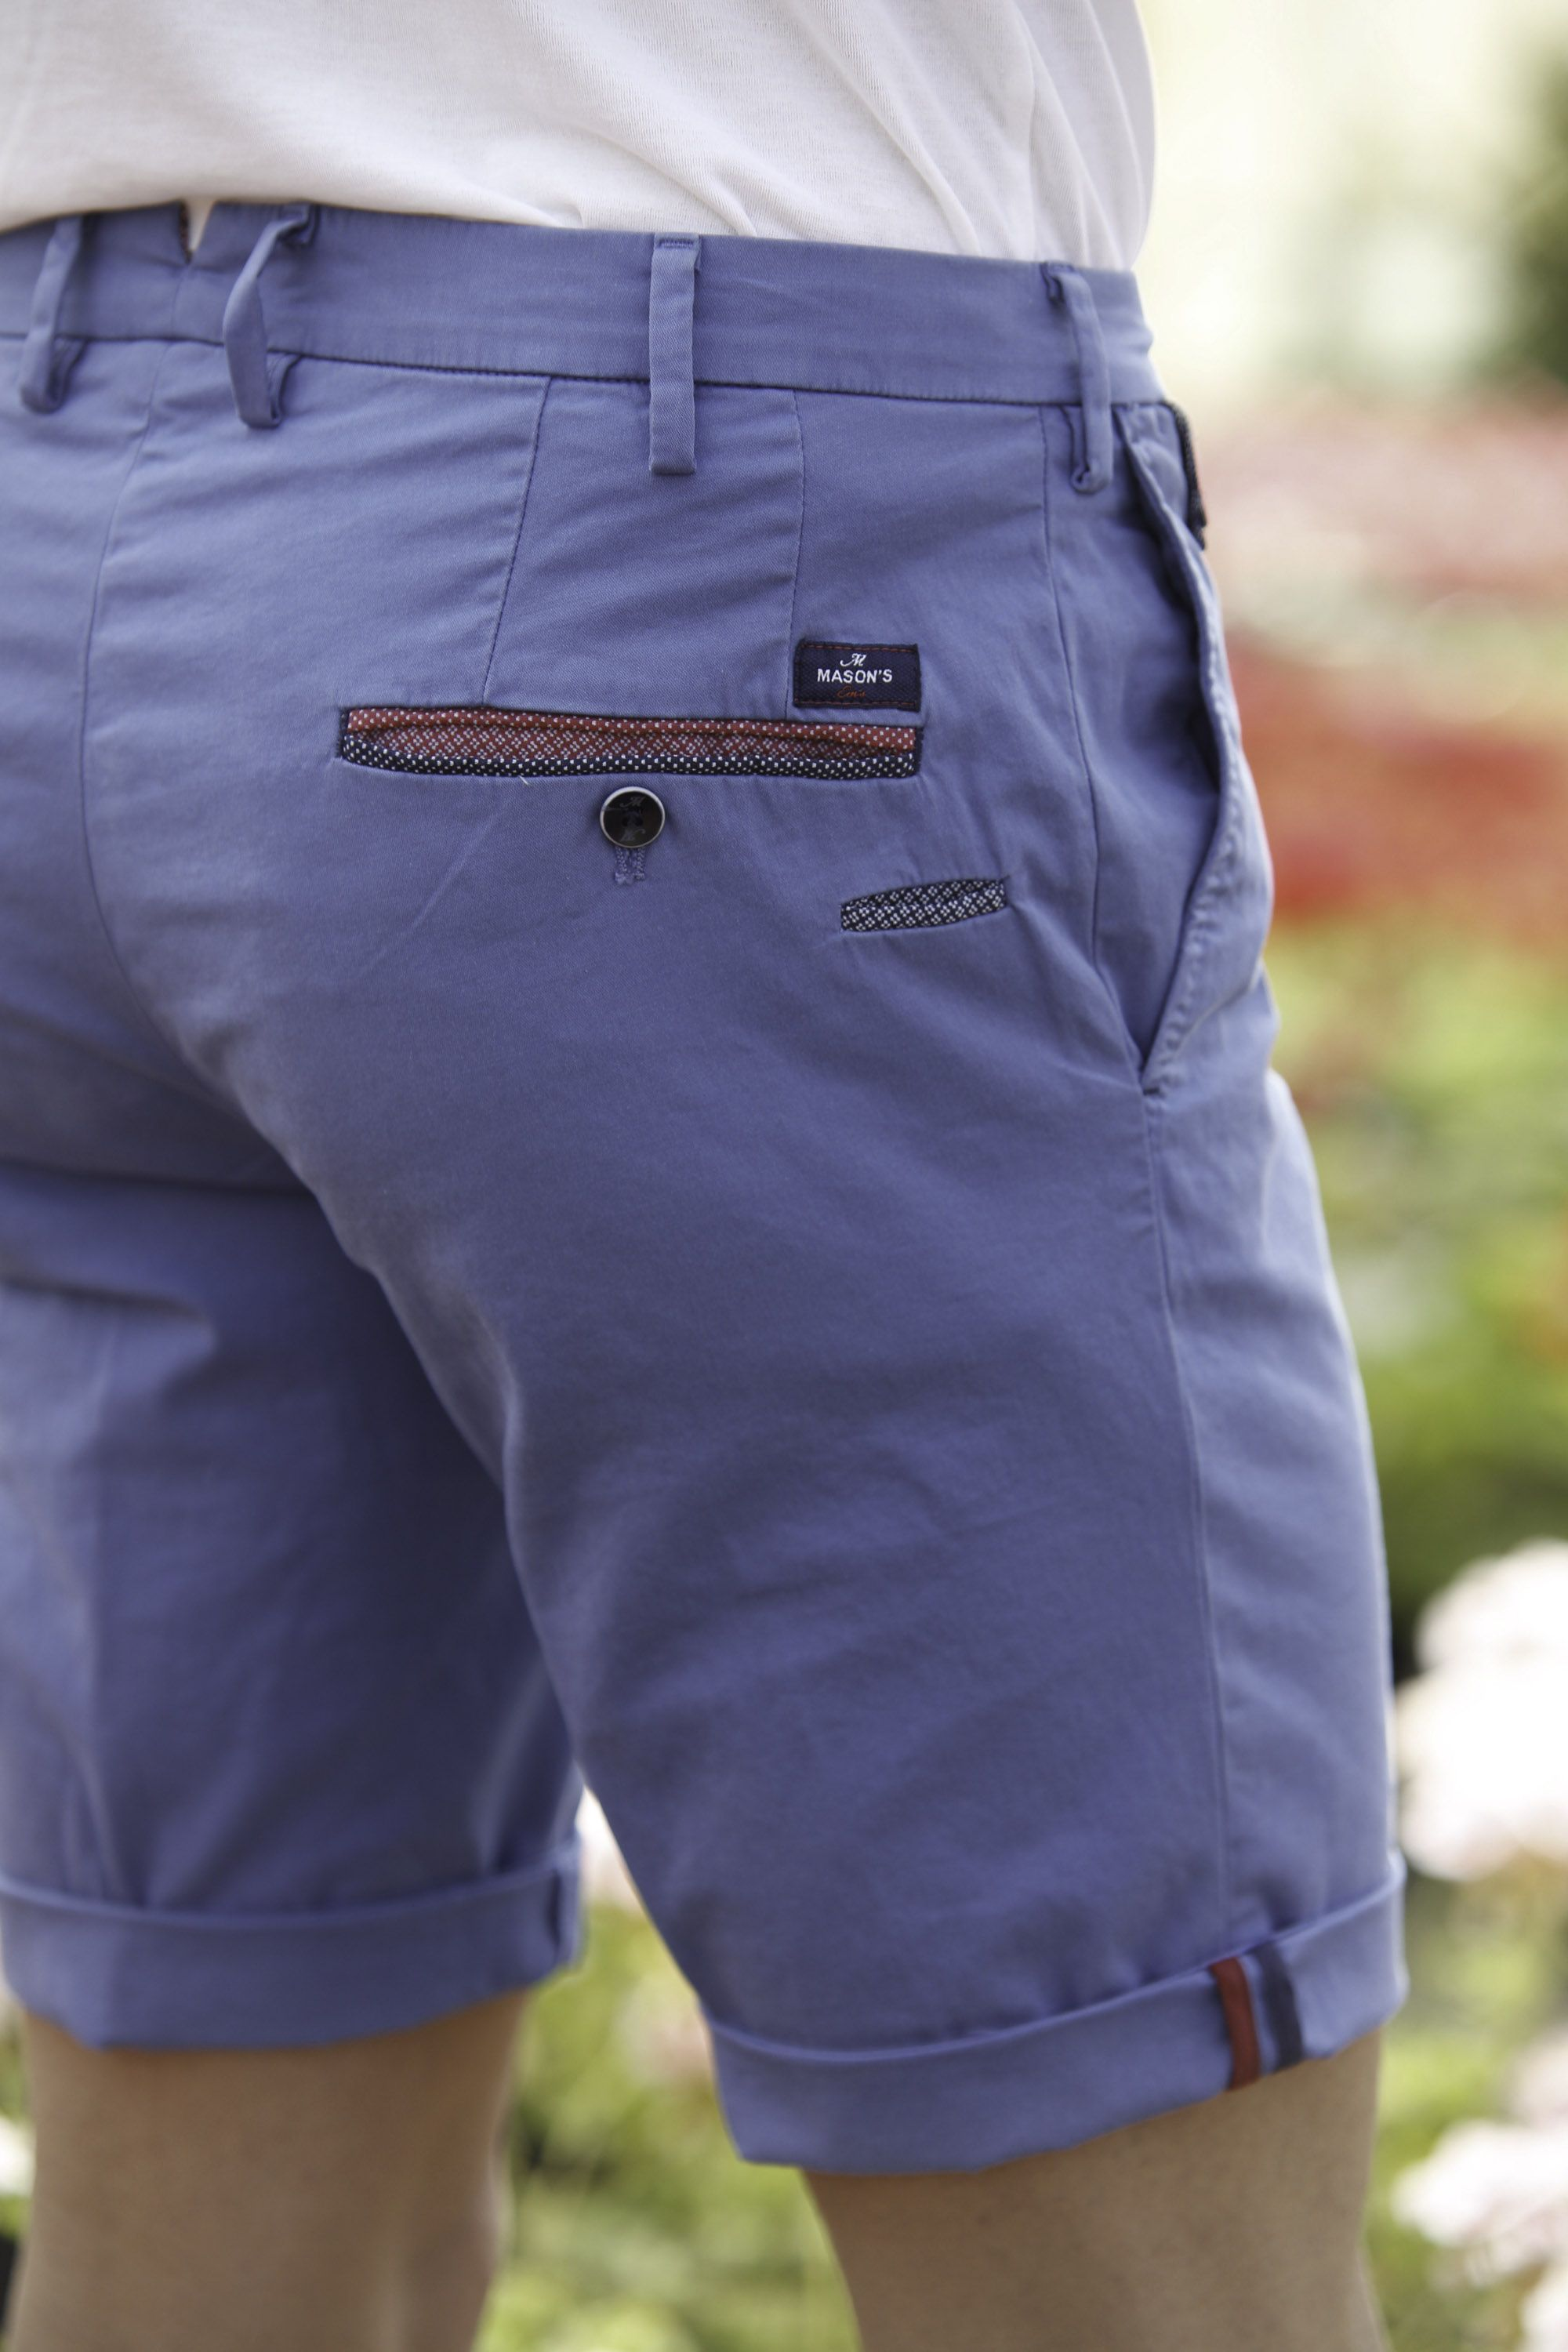 Mason's Man Short Model Torino Color - Masons